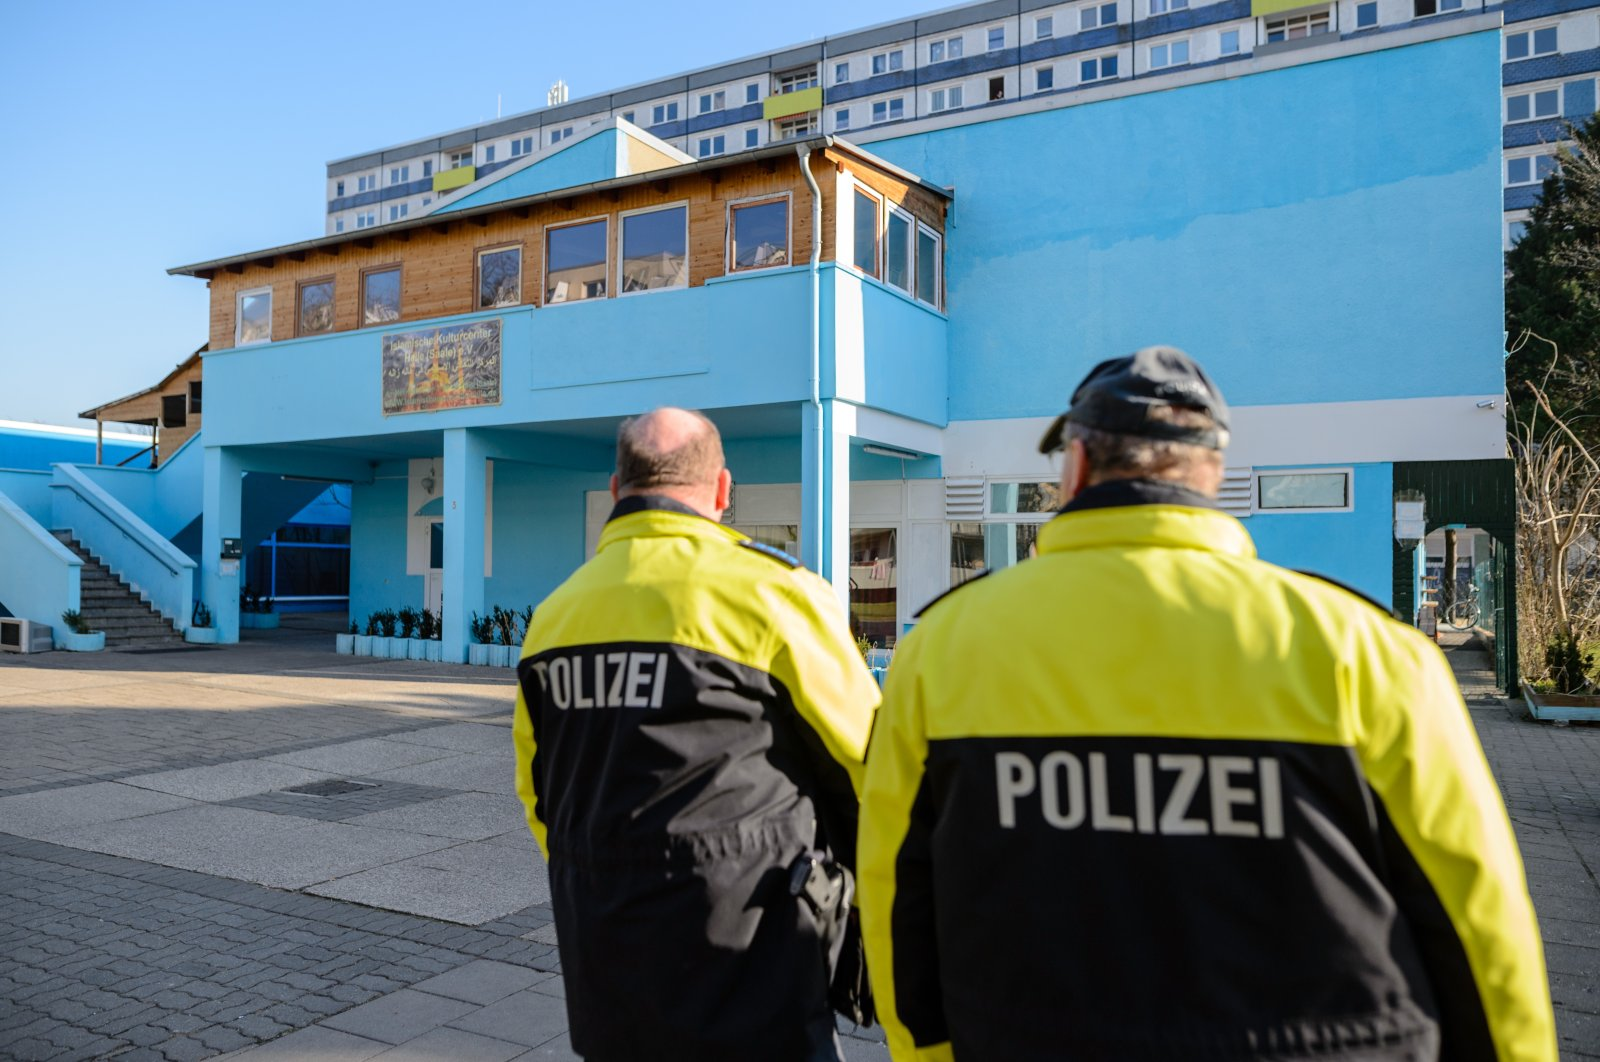 Two policemen secure a Muslim cultural center and mosque following a recent attack, in Halle an der Saale, Germany, Feb. 14, 2018. (Getty Images)